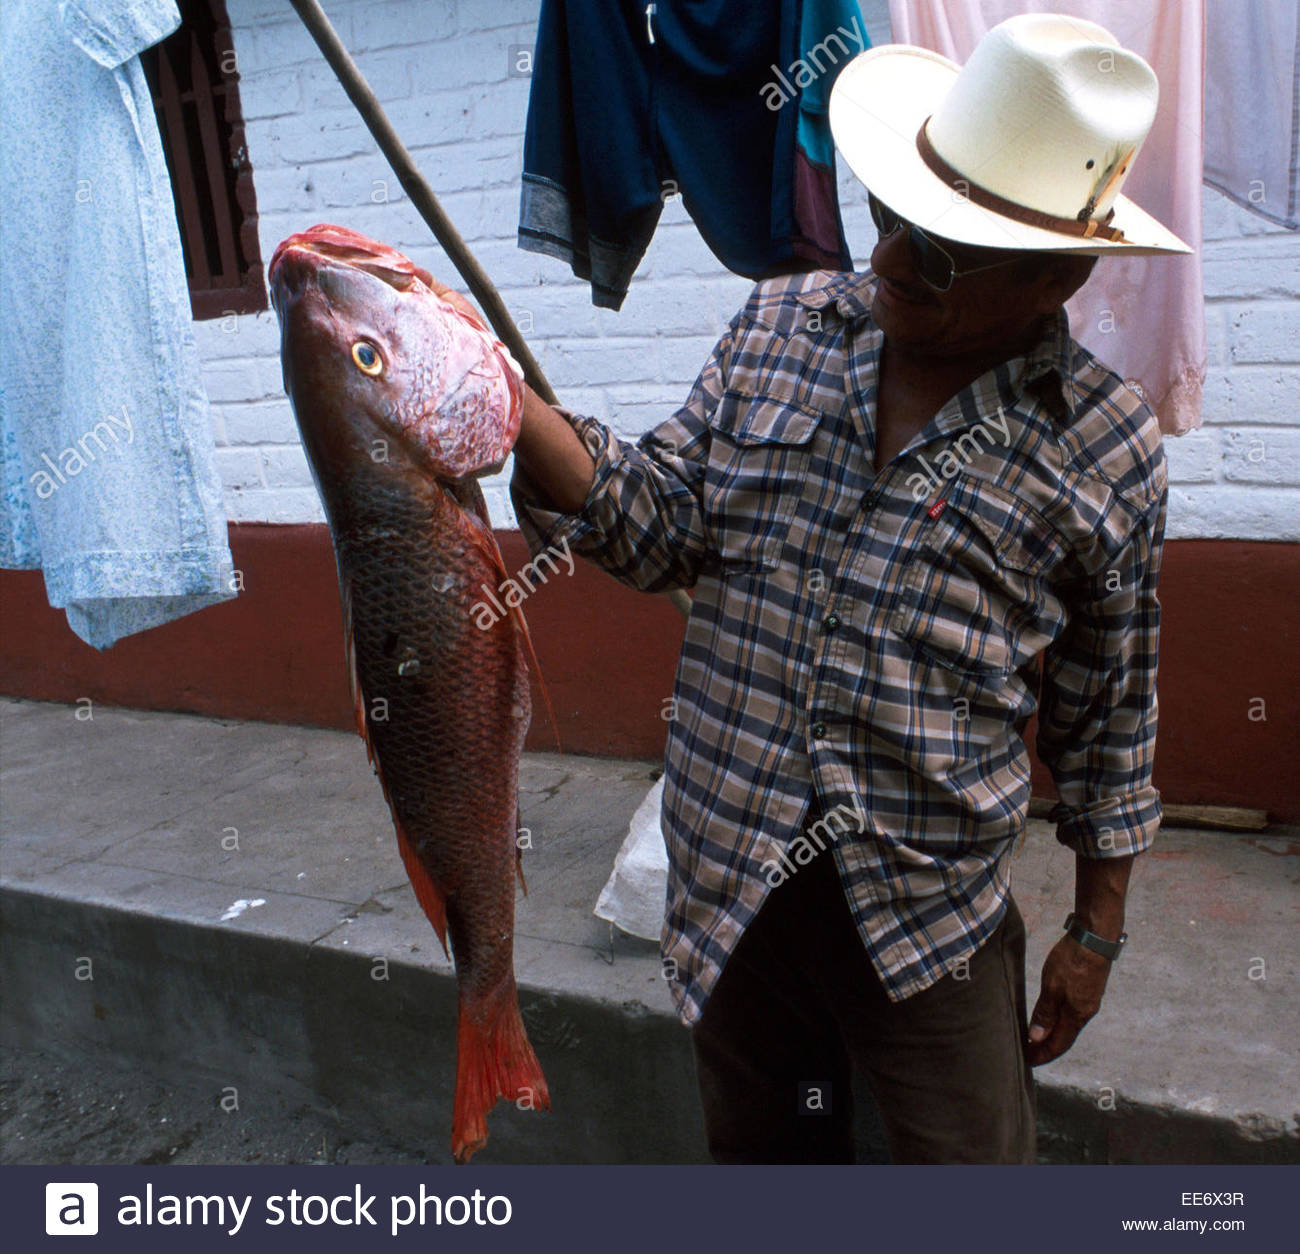 Mexcaltitan, Fisherman admiring catch - Stock Image